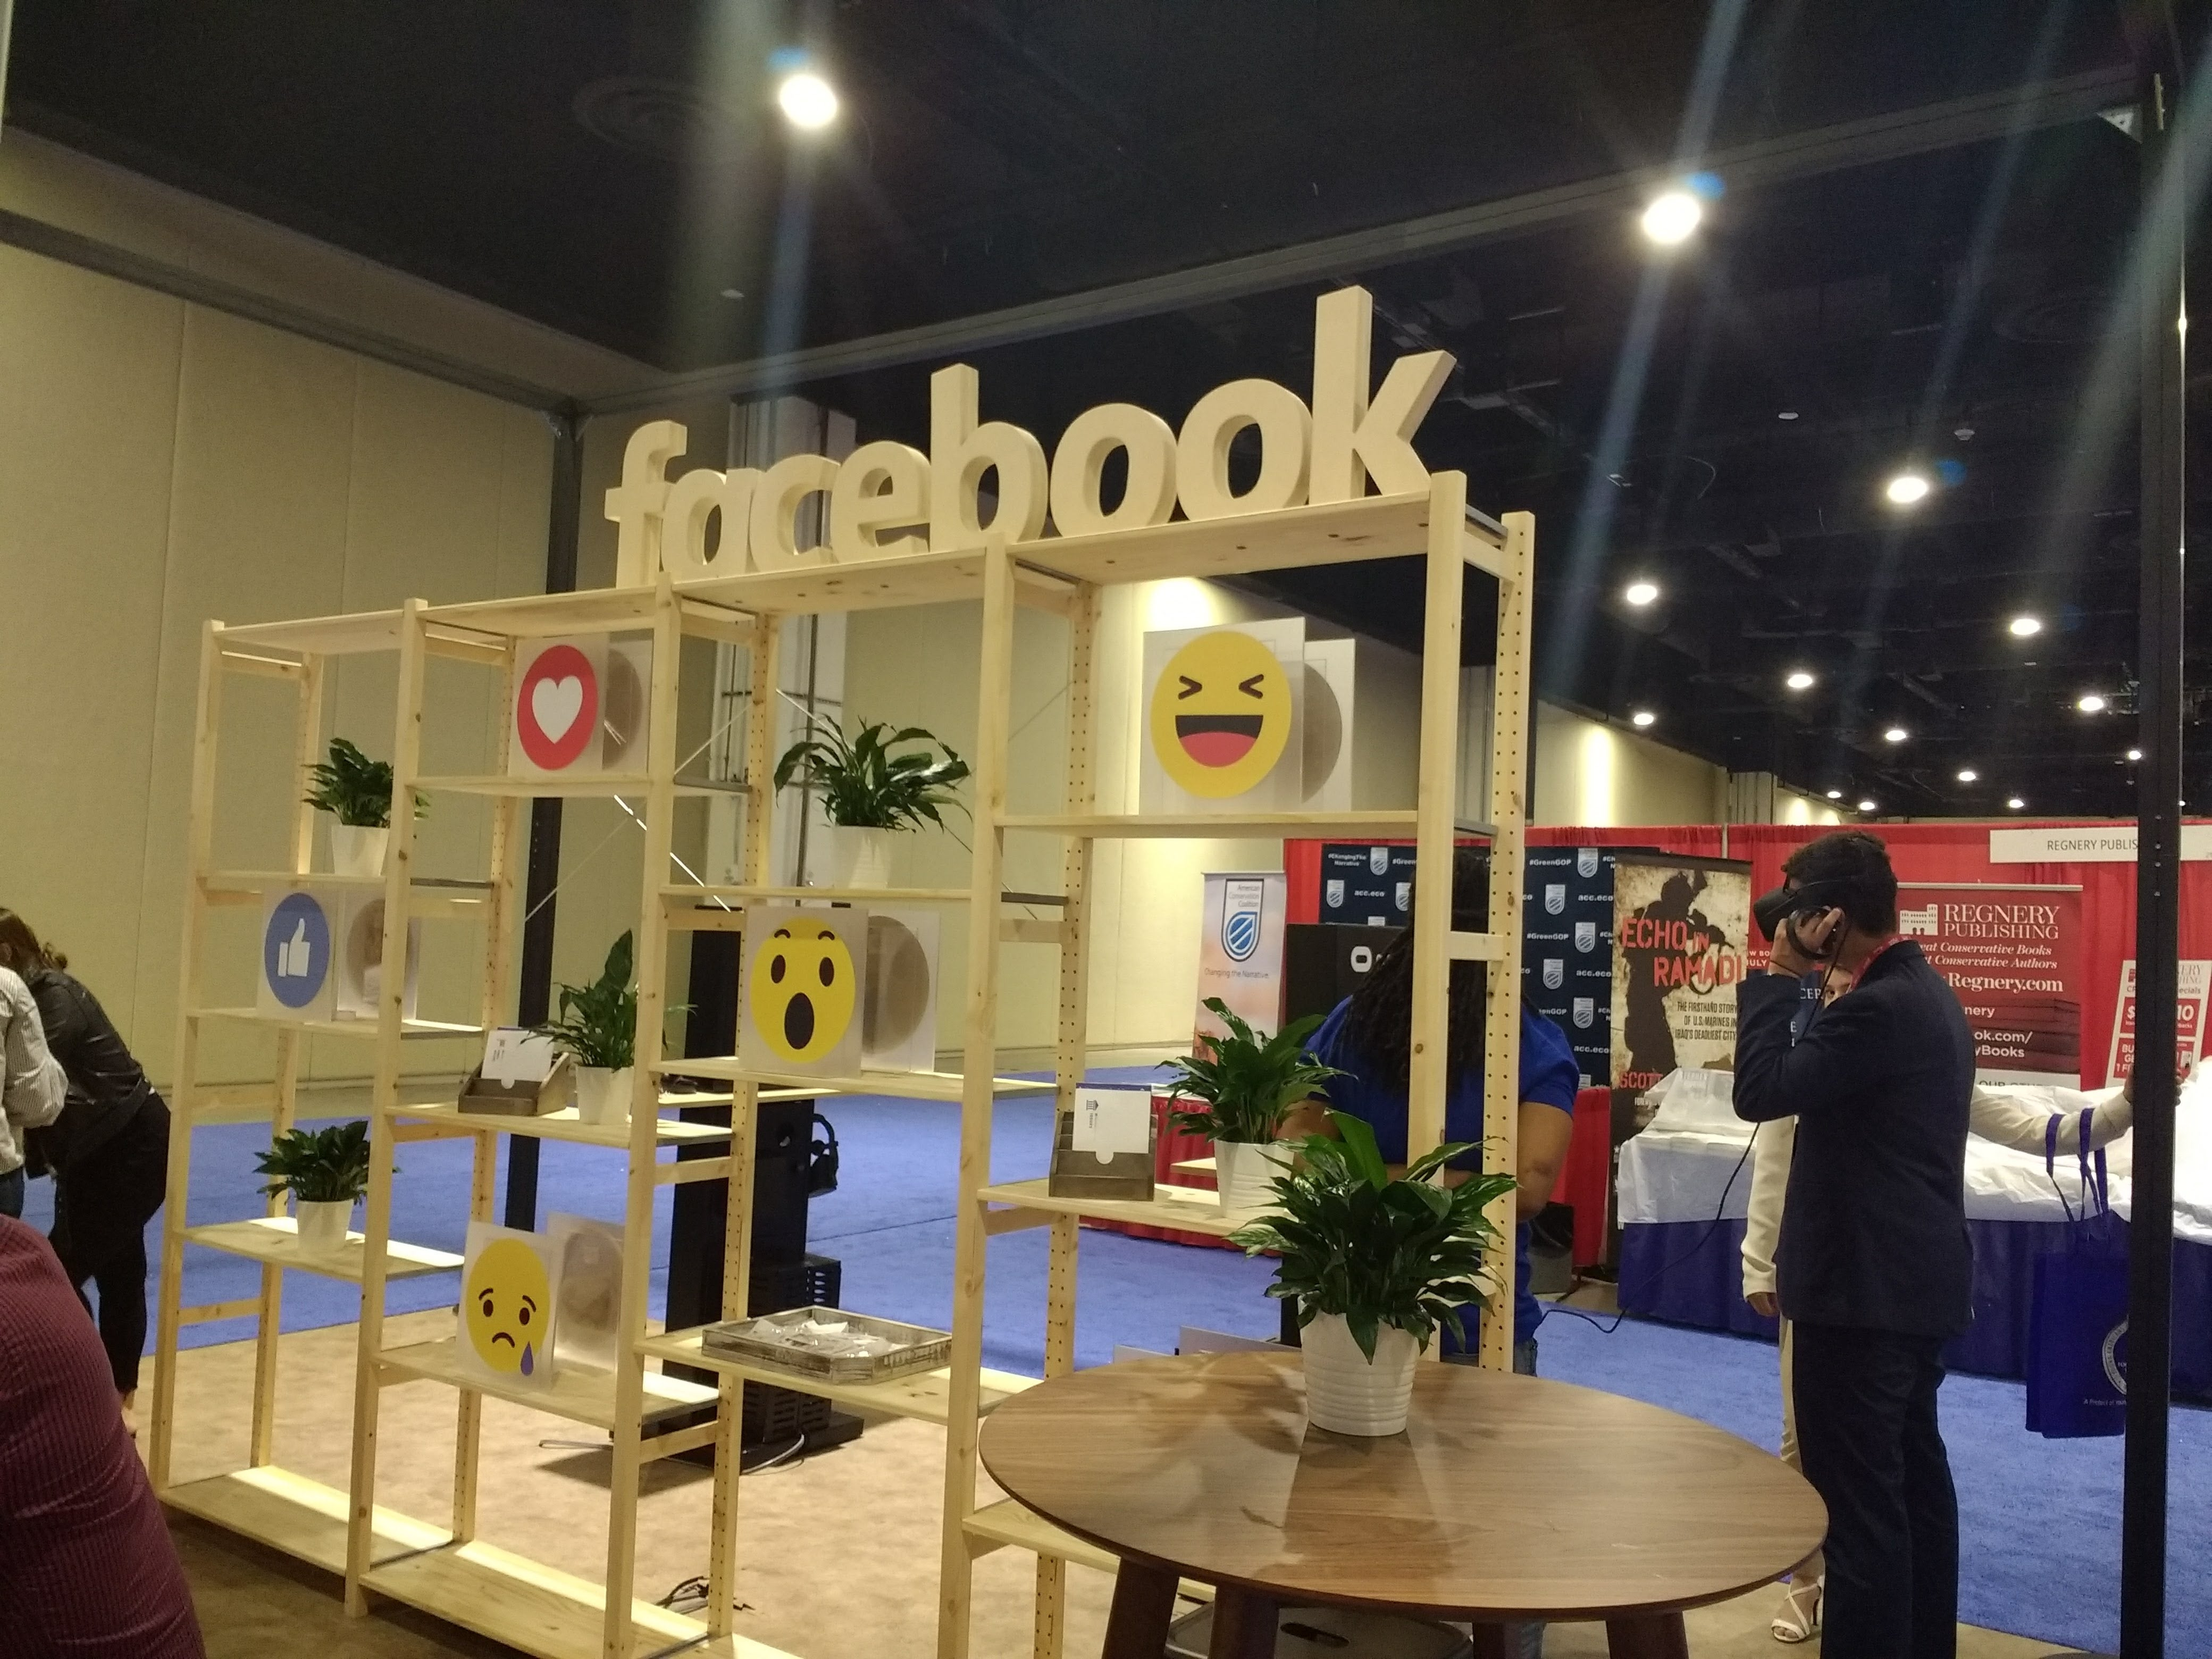 Facebook also had a table this year, at which they initially offered demonstrations of a shooting virtual reality game on the Oculus system.